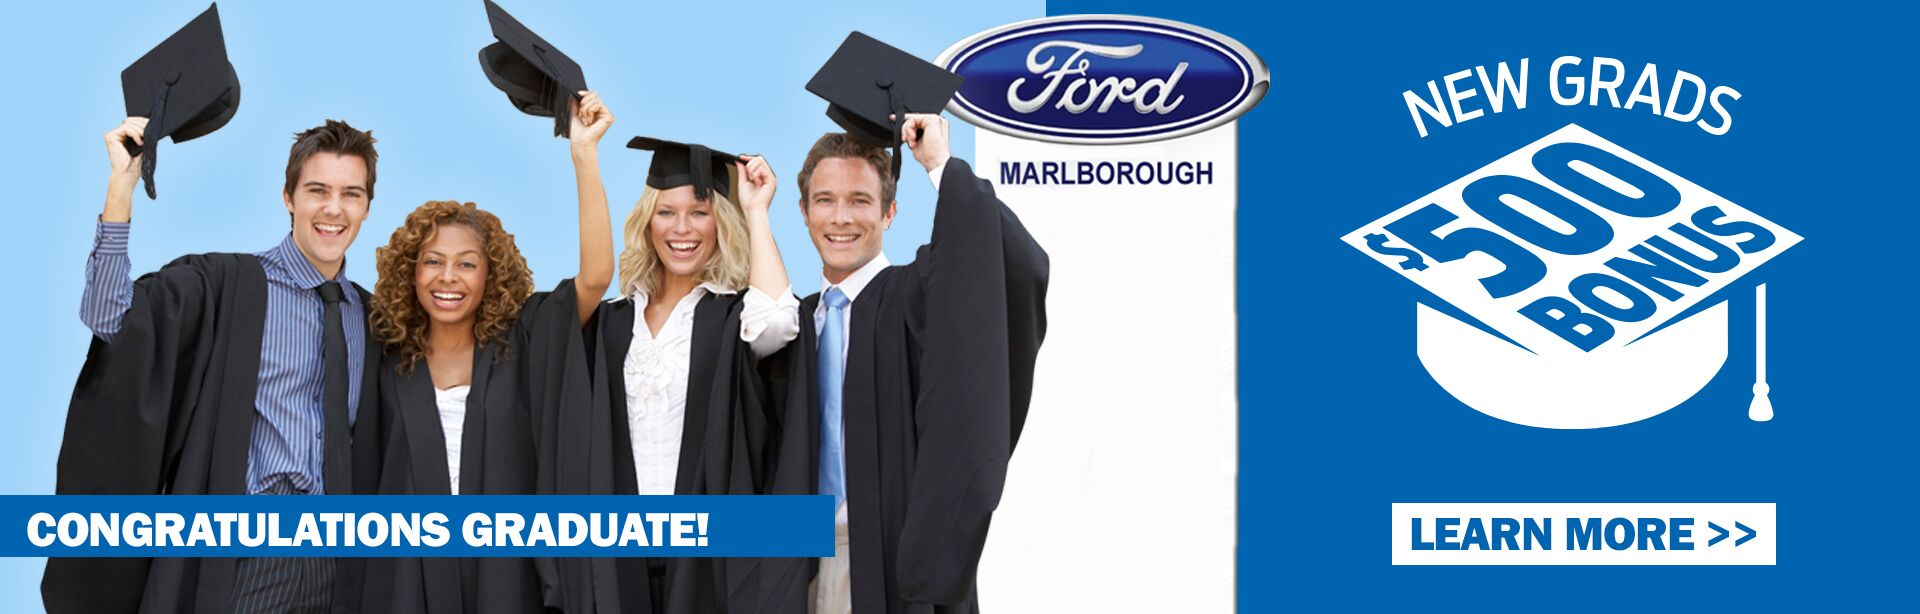 Marlborough Ford's Graduate Program